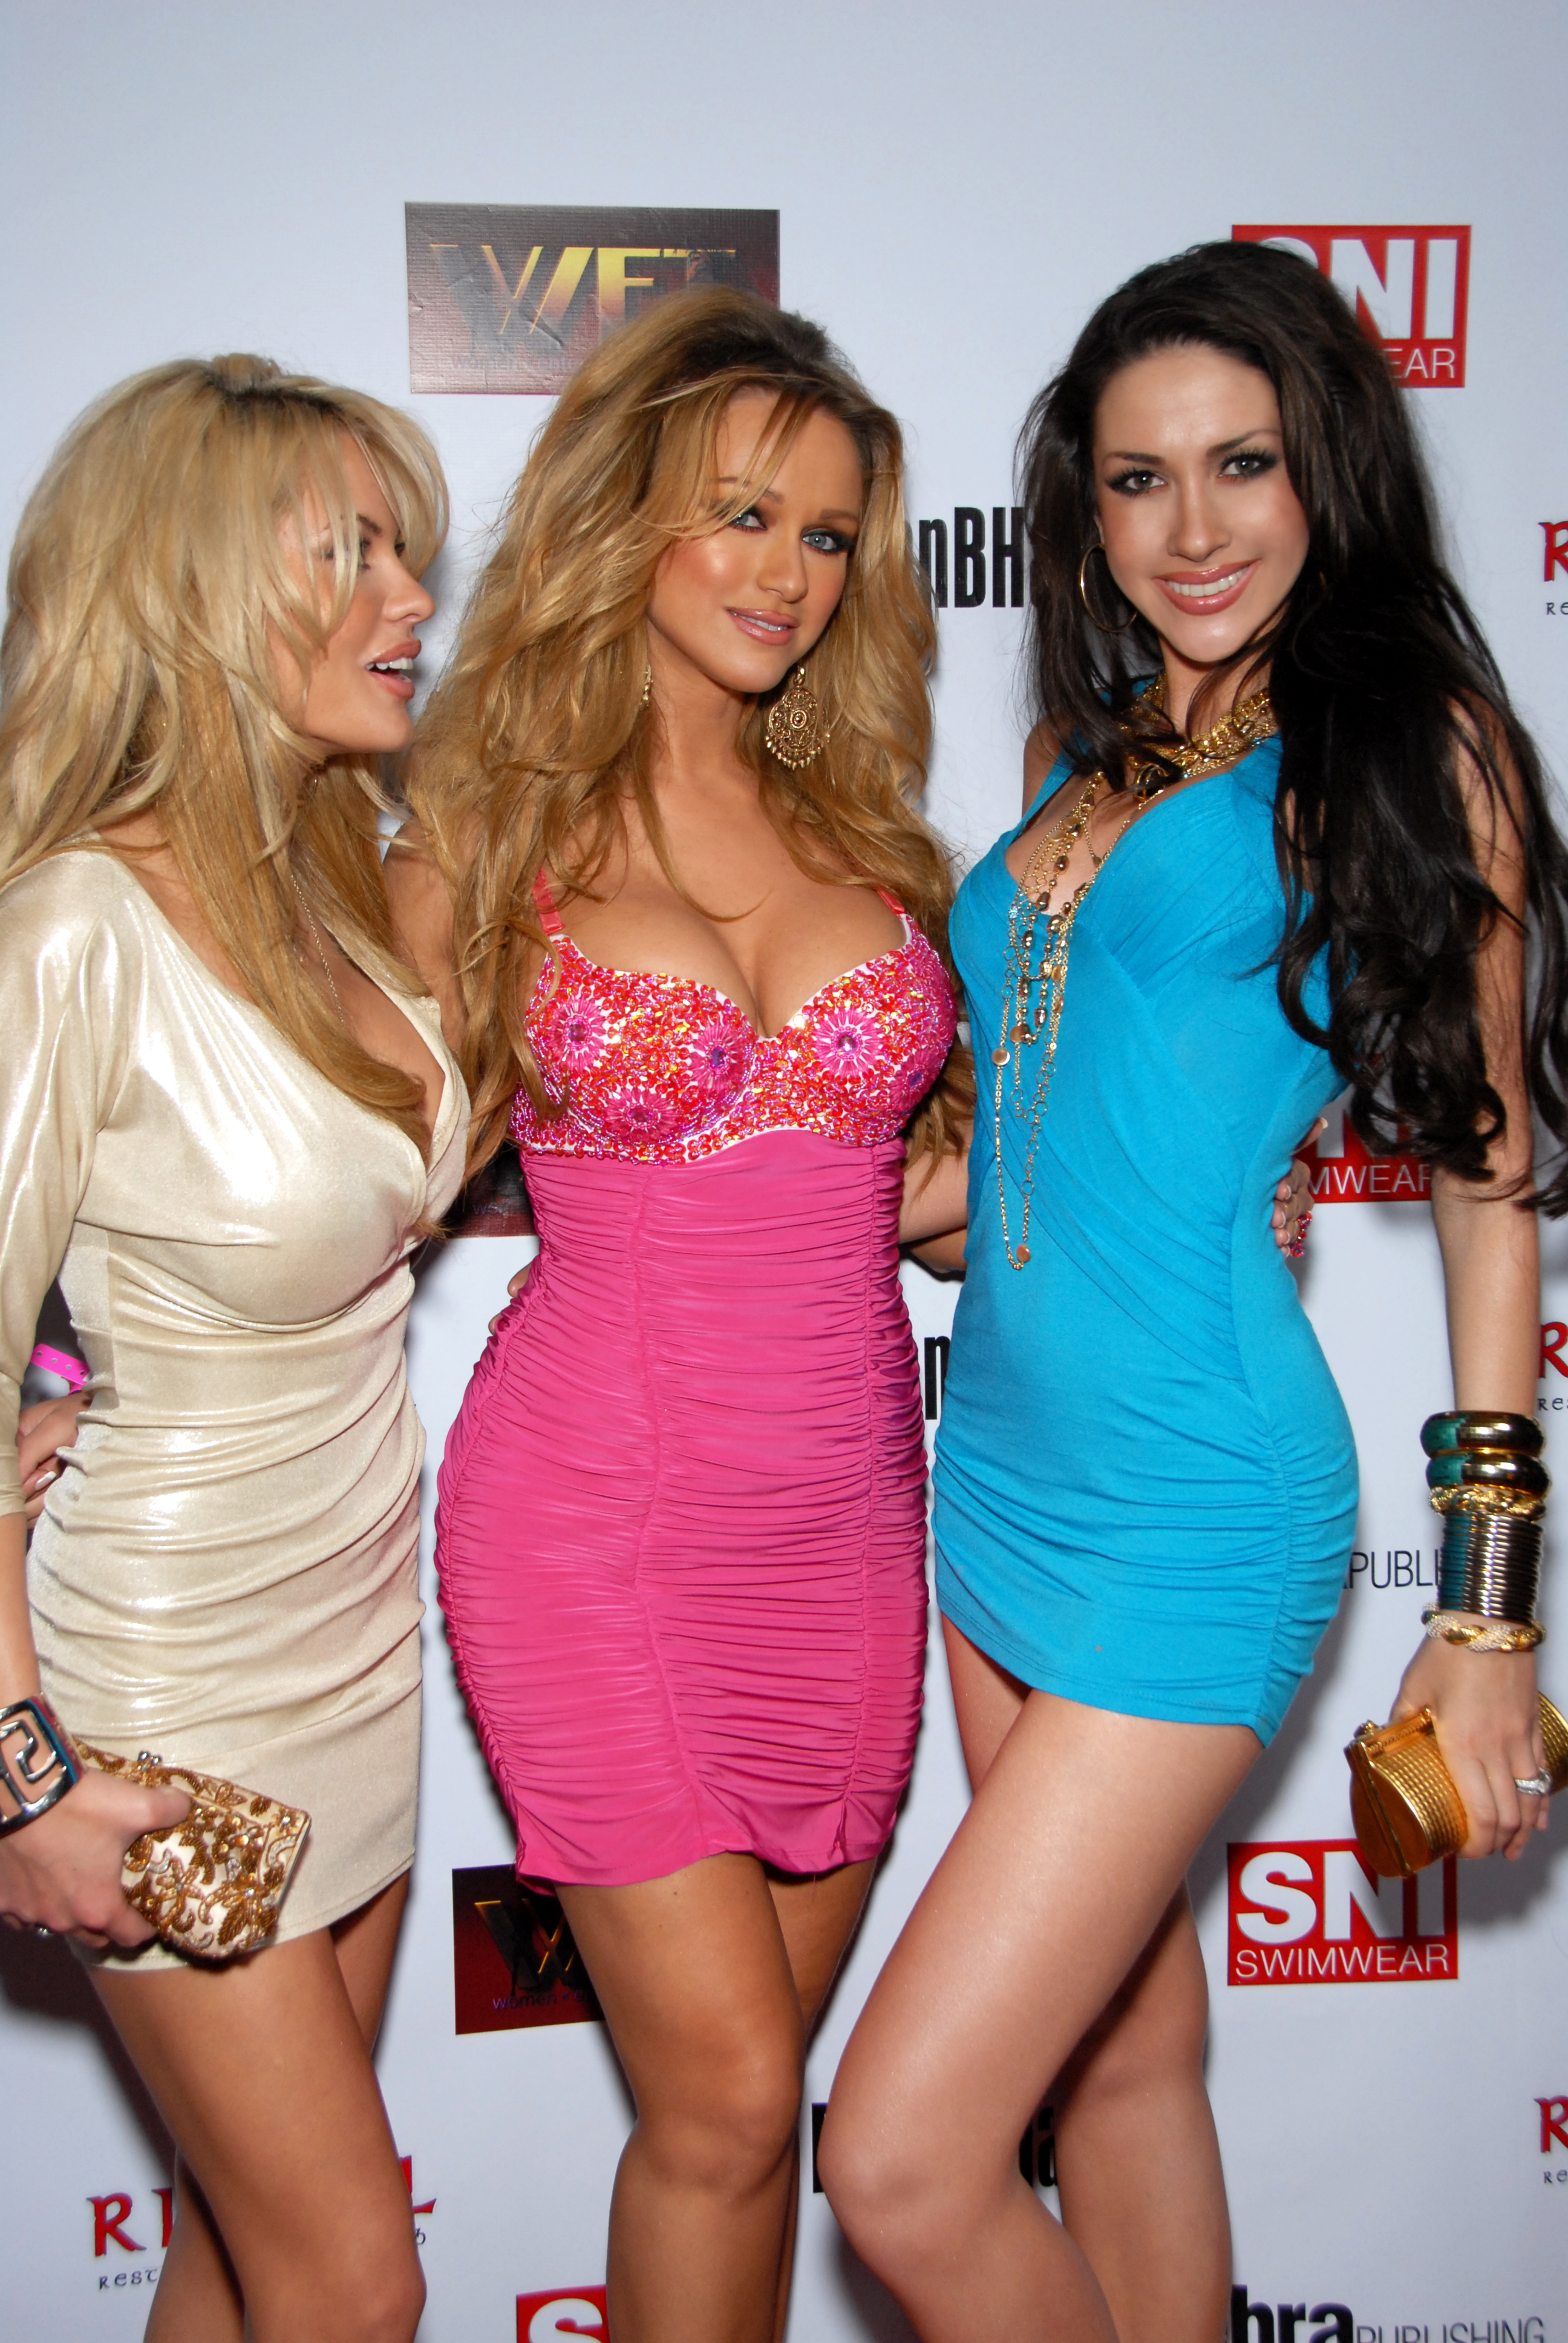 Description Glamour Models on Red Carpet.jpg